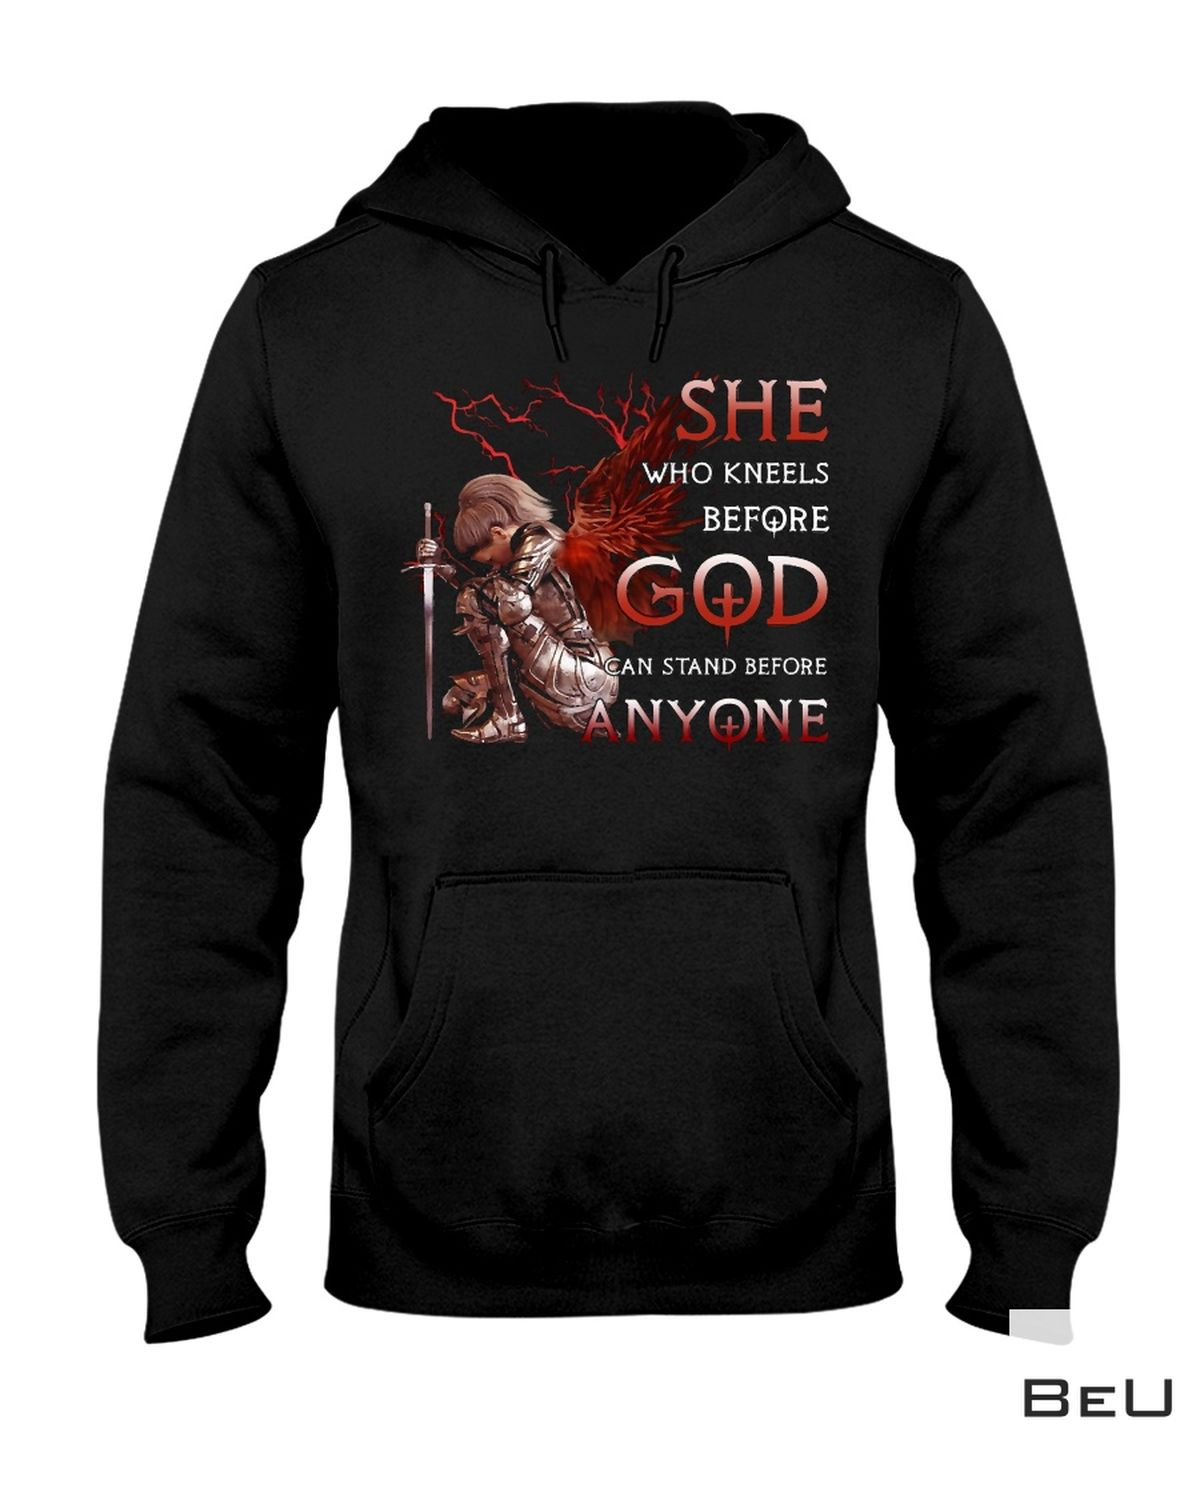 New Kneels Before God And Stand Before Anyone Shirt, Hoodie, Tank Top